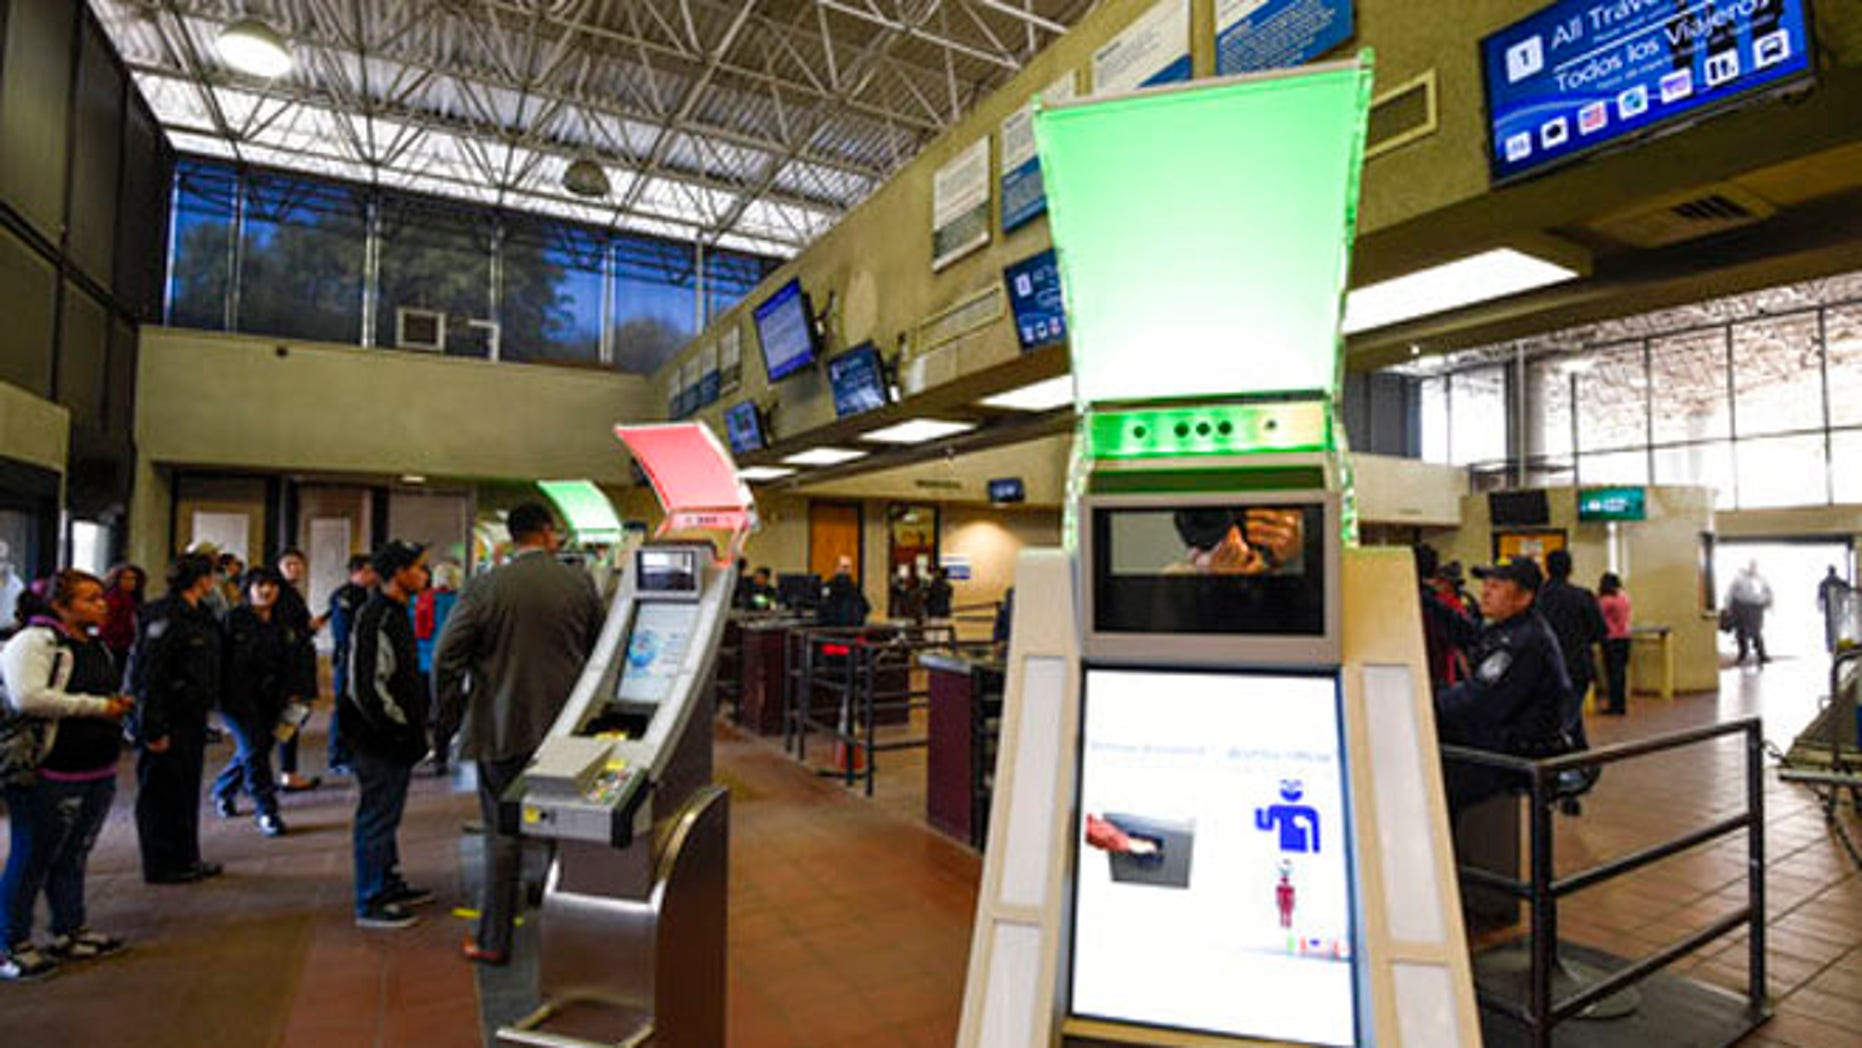 Dec. 10, 2015: Pedestrians crossing from Mexico into the United States at the Otay Mesa Port of Entry wait to use biometric kiosks in San Diego